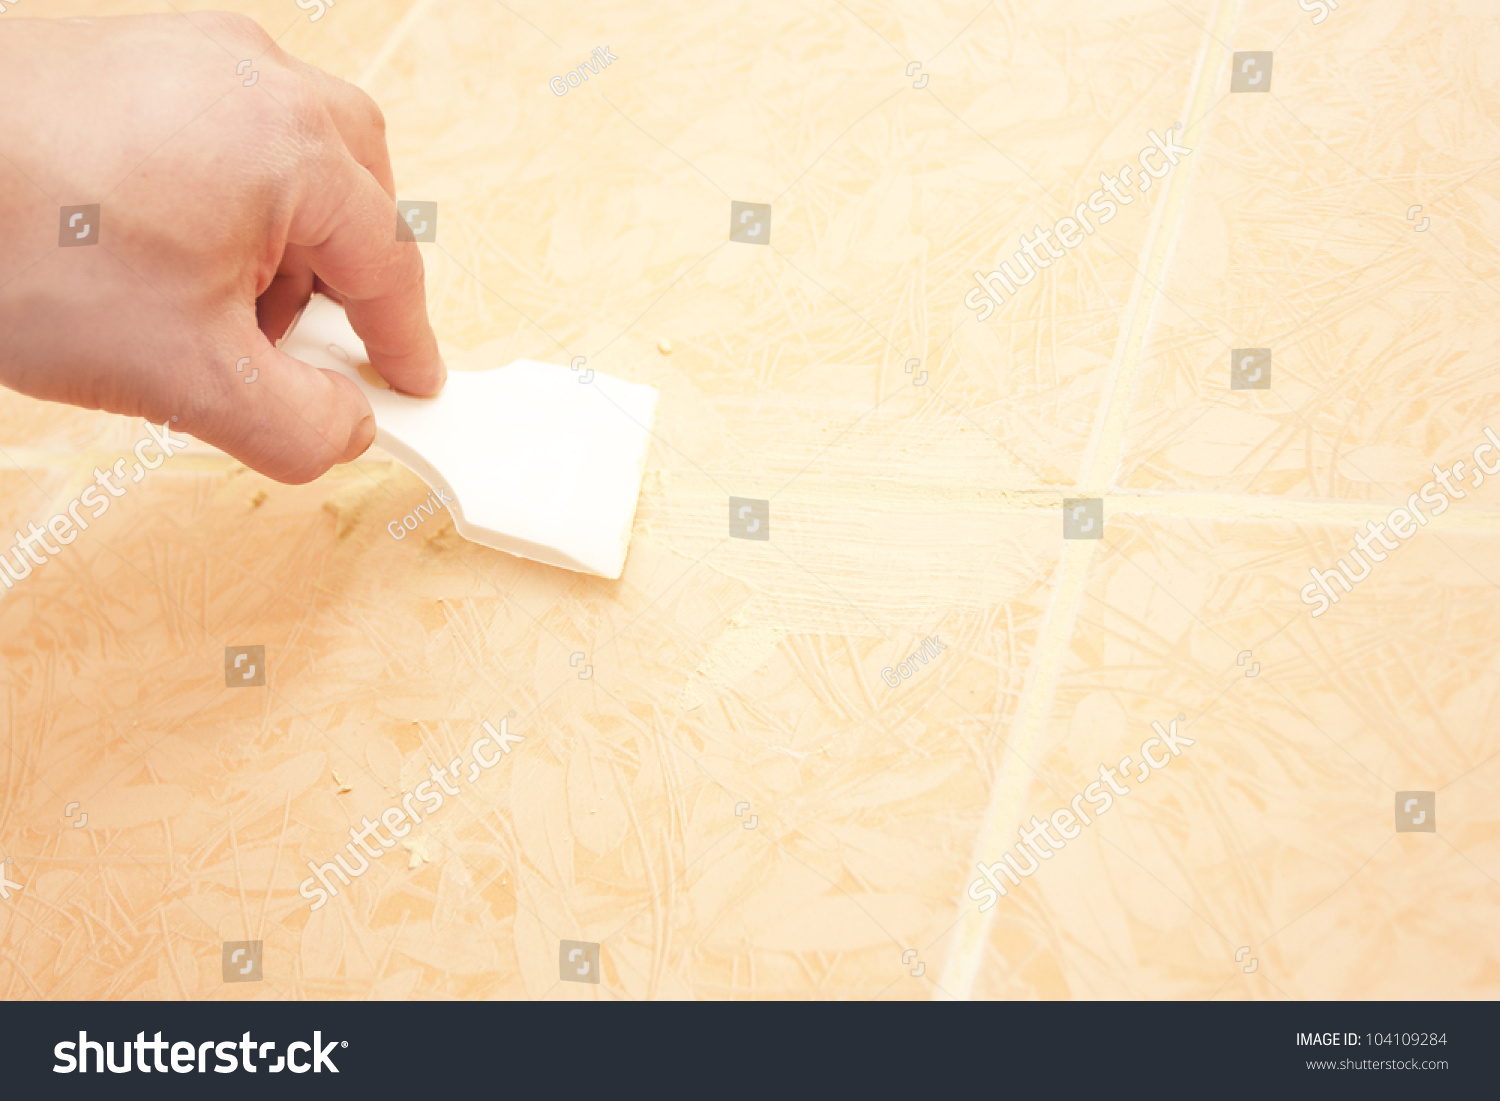 Manufacturing of ceramic tiles image collections tile flooring ceramic tiles manufacturing process in india images tile ceramic tiles manufacturing process in india images tile dailygadgetfo Image collections